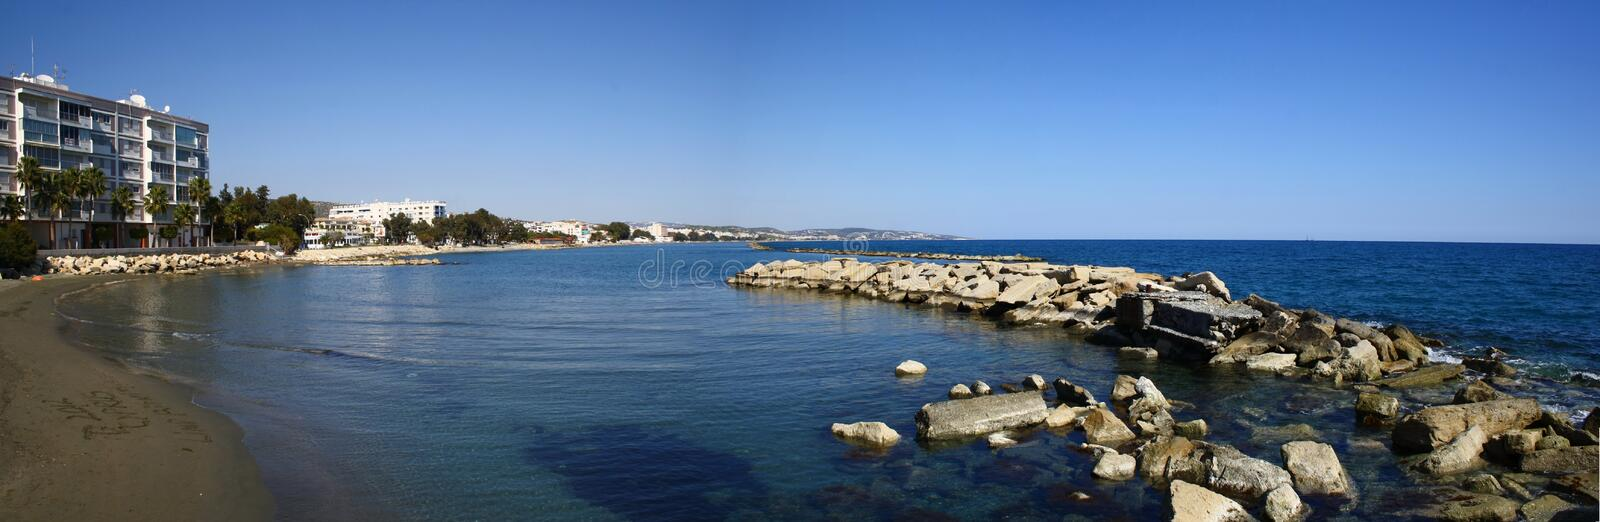 Panorama picture of Cyprus Seaside beach and port royalty free stock photos